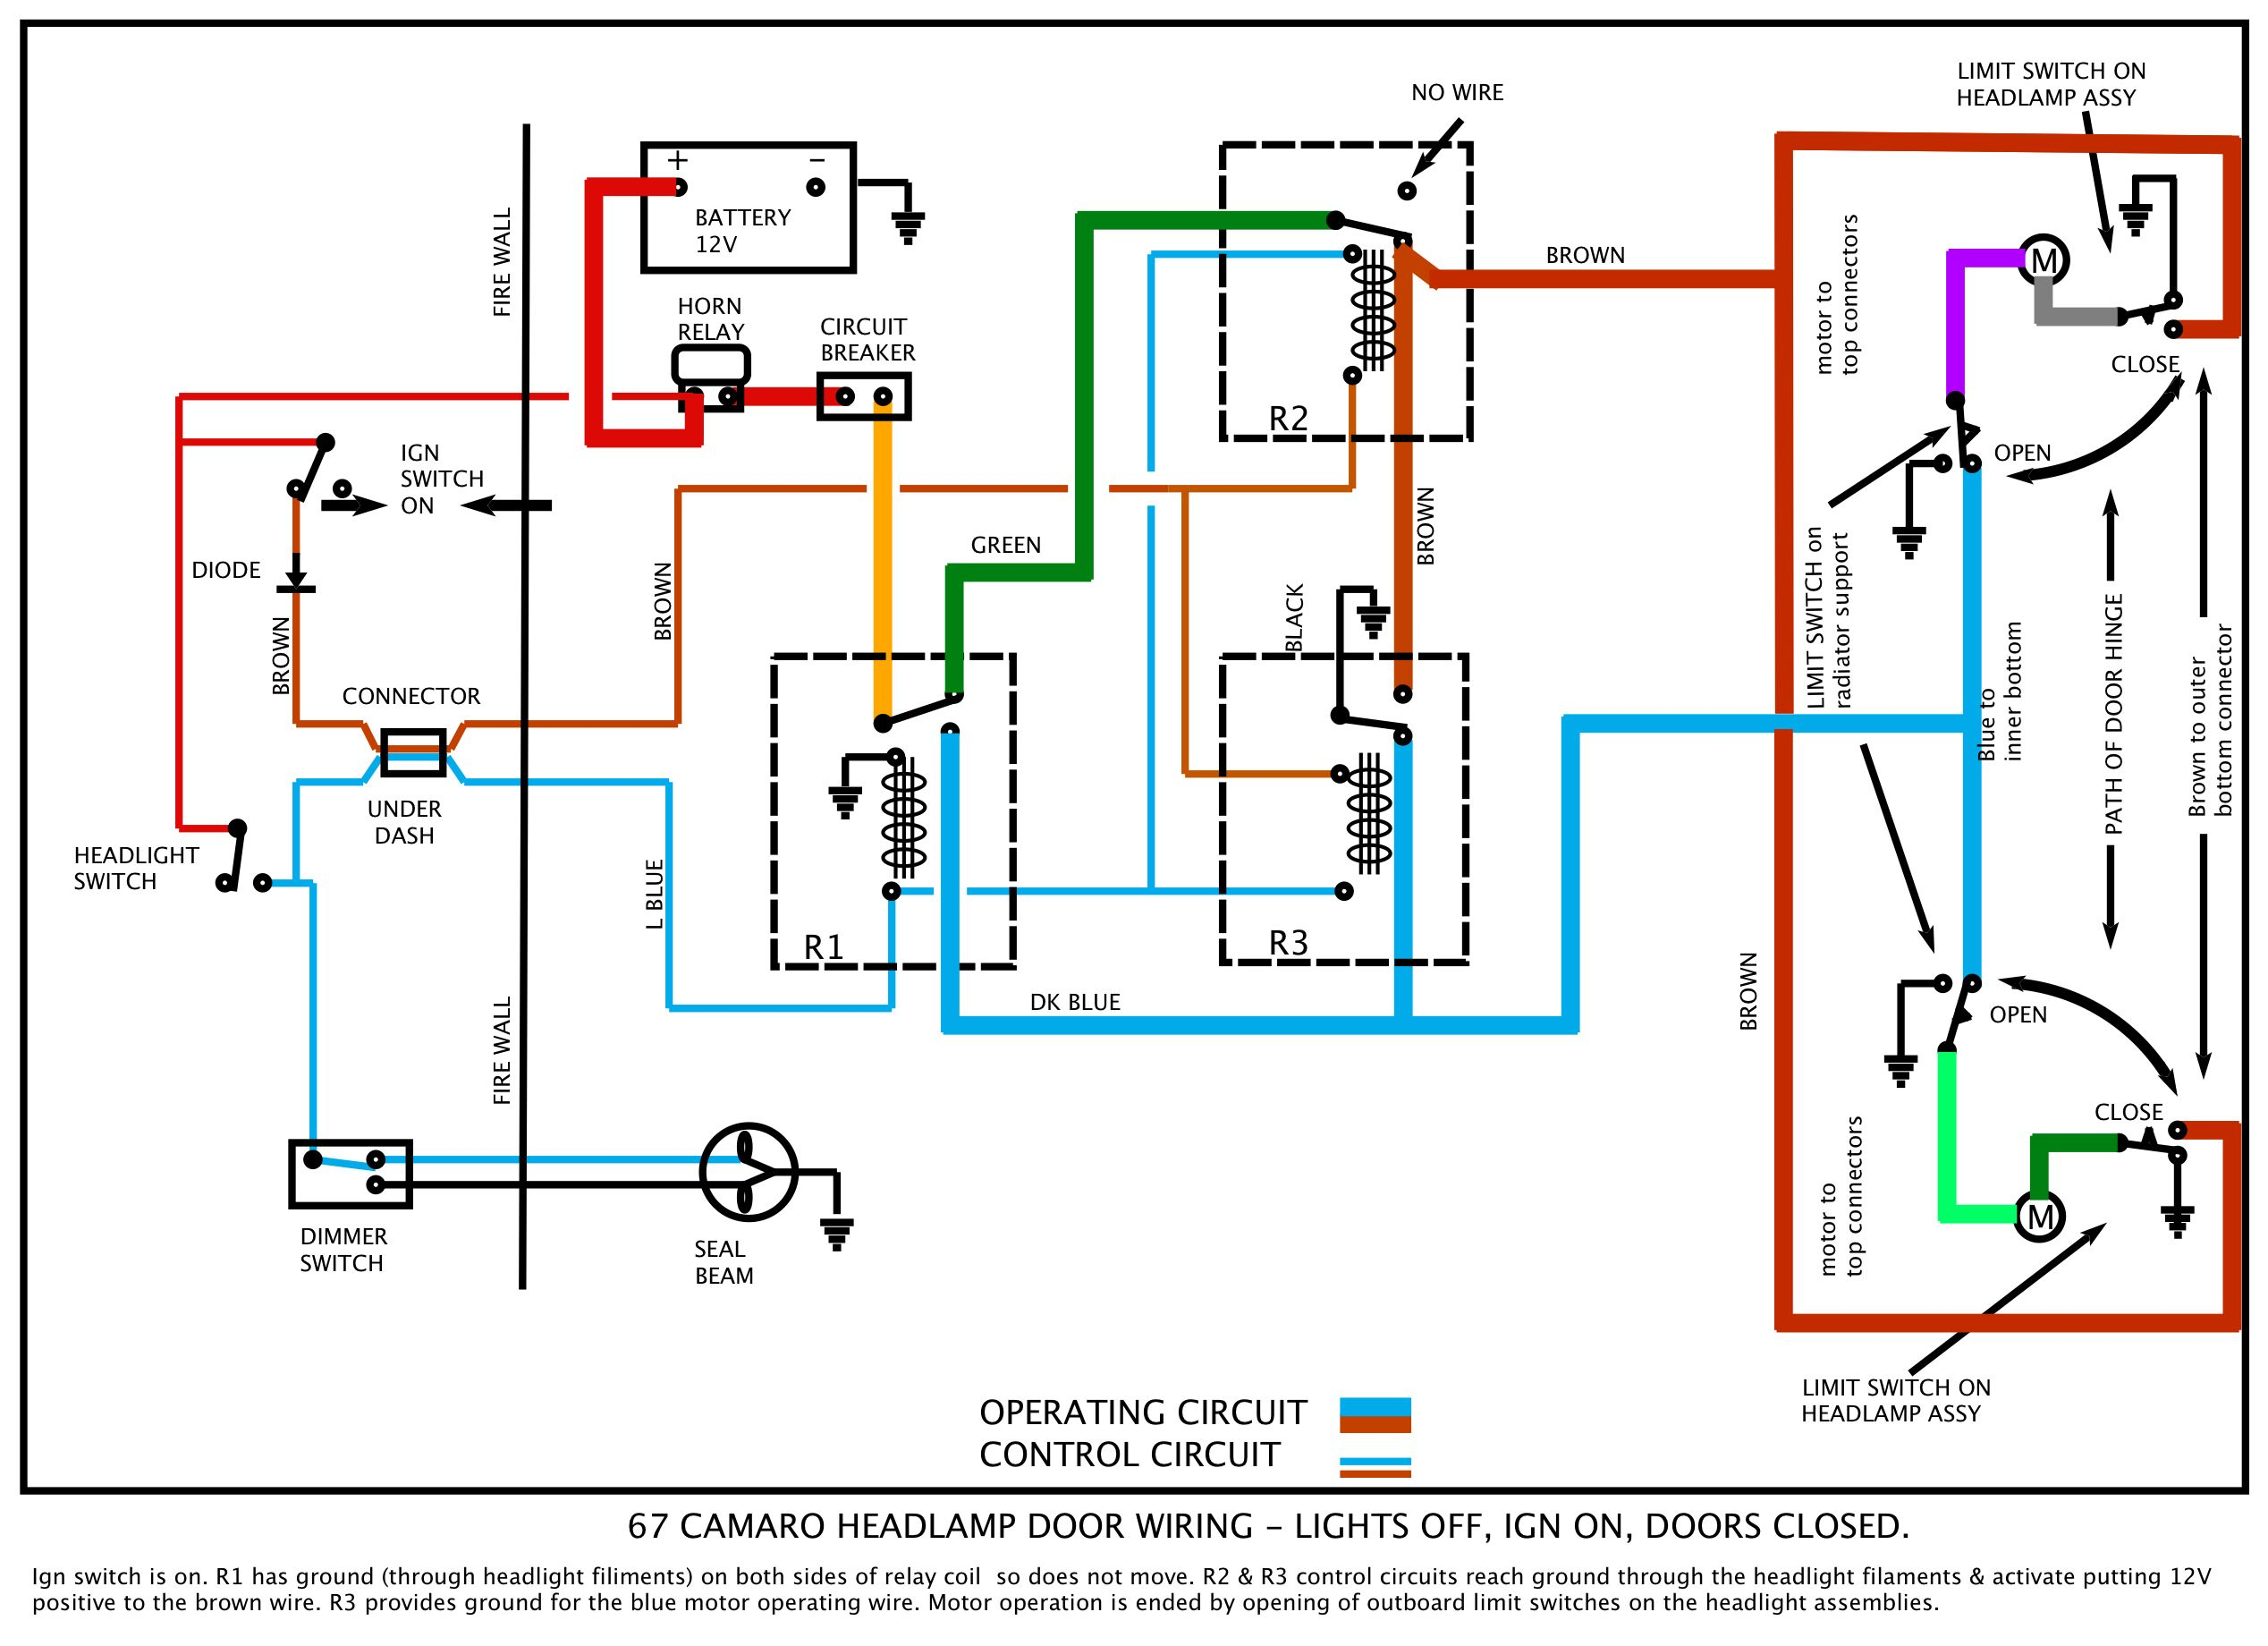 Headlight Wiring Kit - Wiring Diagram - Headlight Switch Wiring Diagram